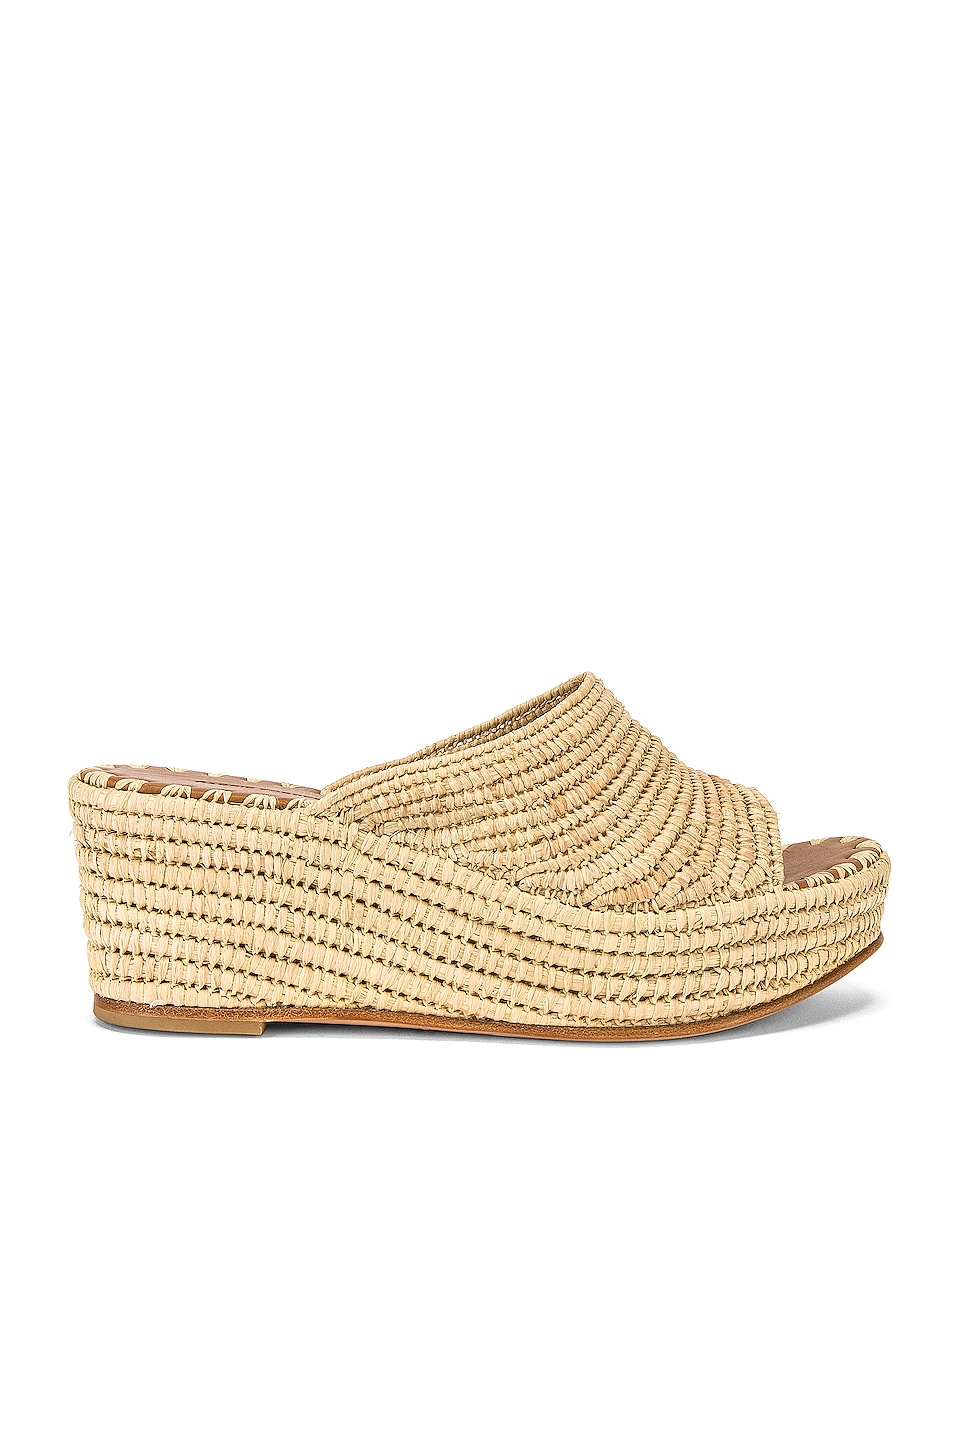 Carrie Forbes Karim Wedge in Natural